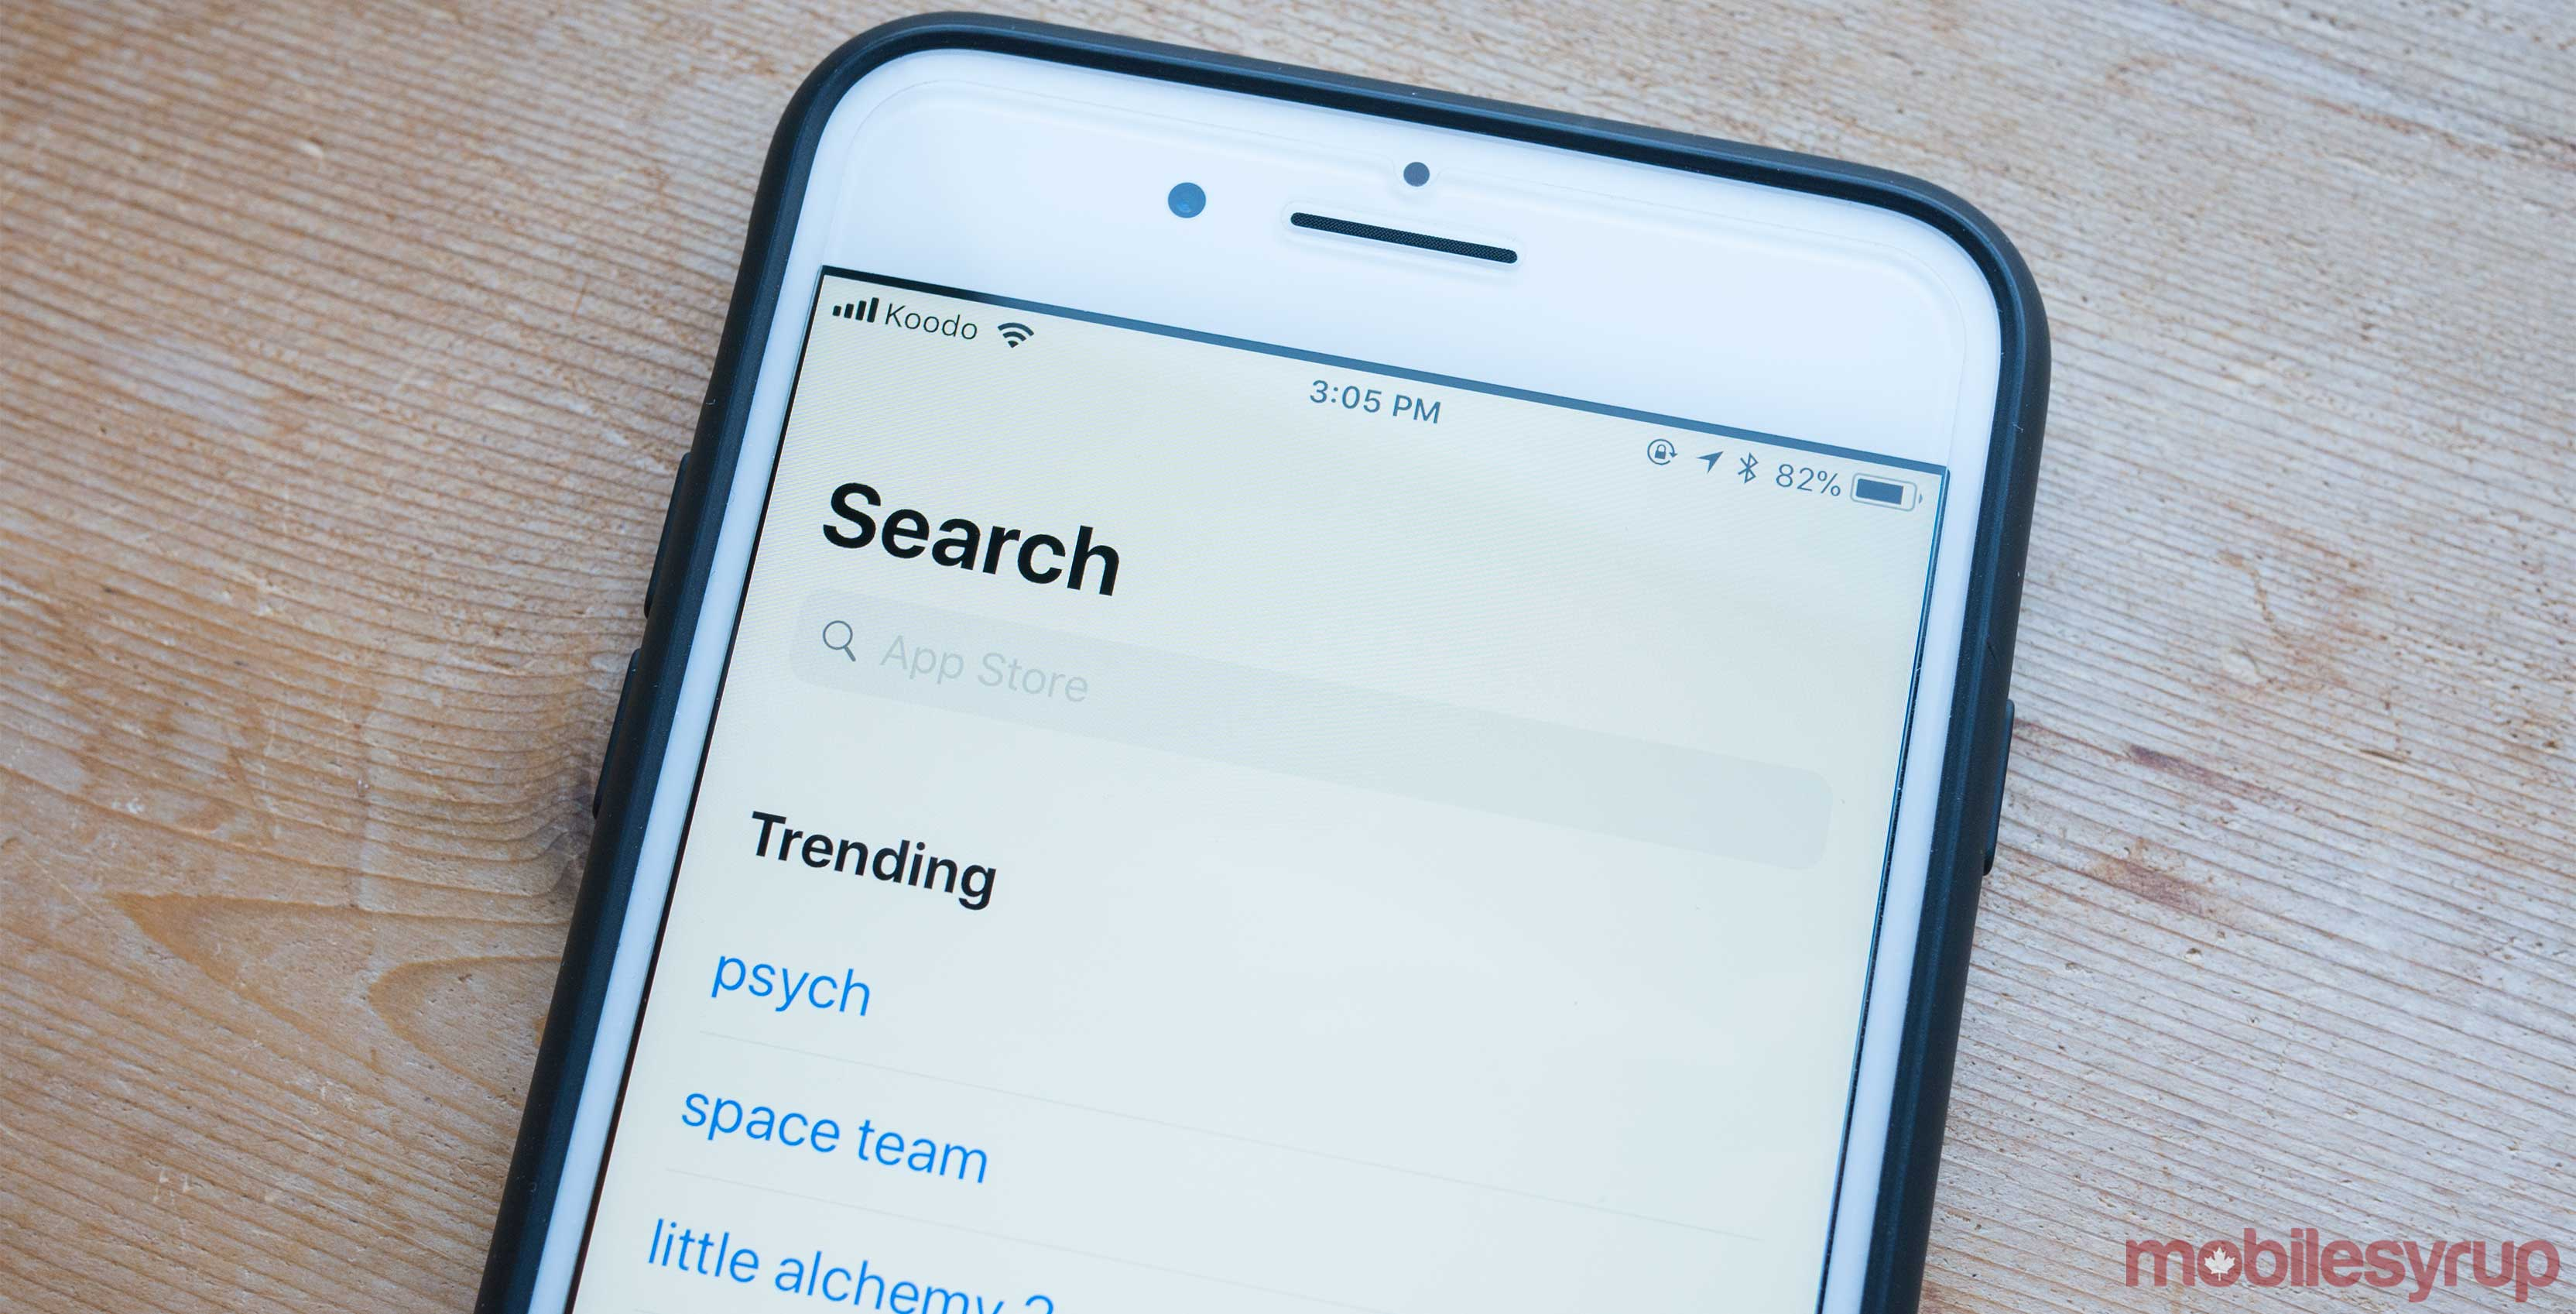 App Store search results